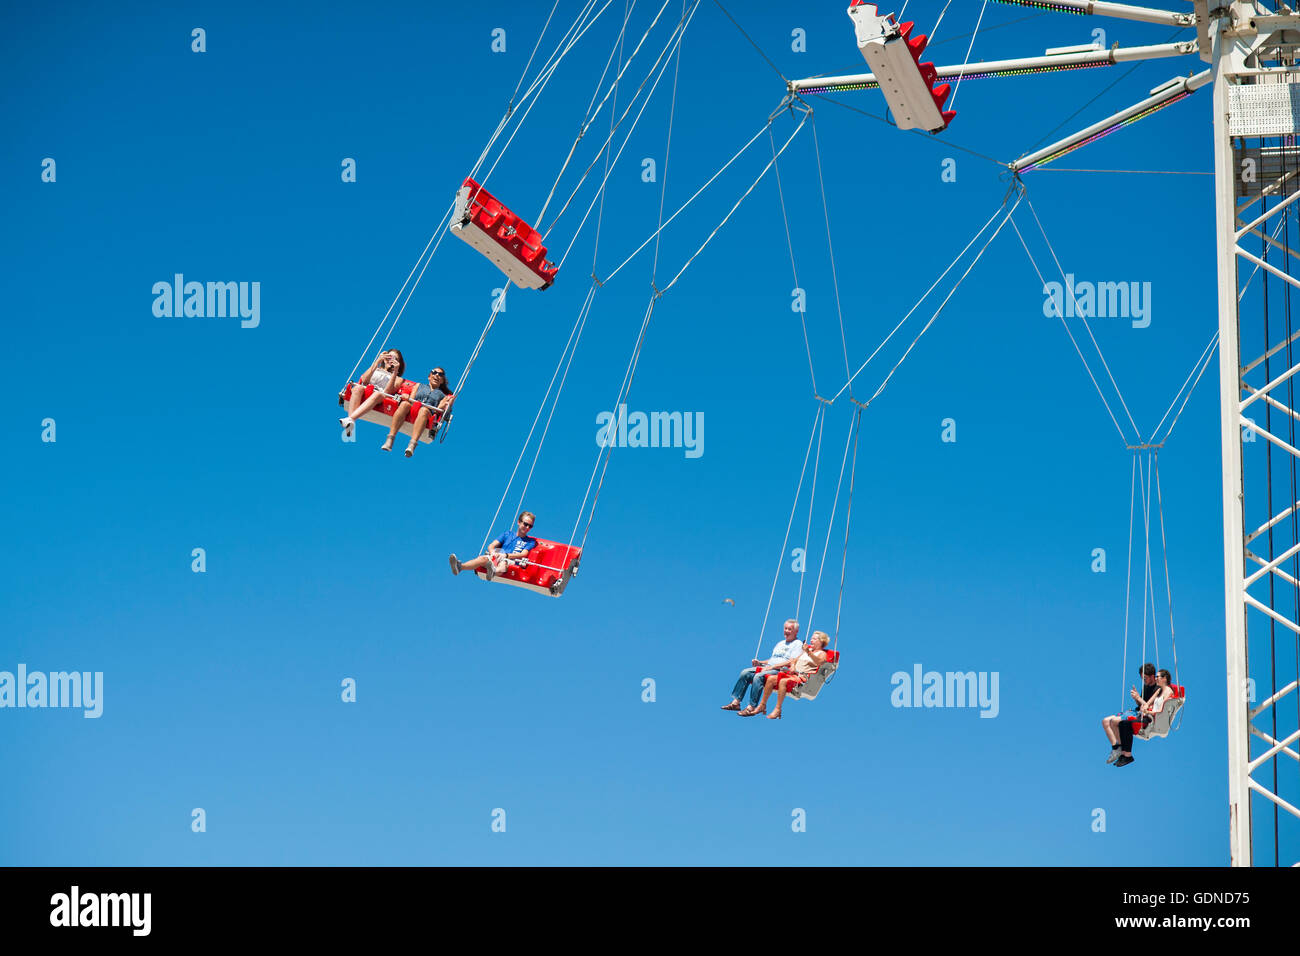 People on fairground ride swings high up in the air with  blue sky background - Stock Image